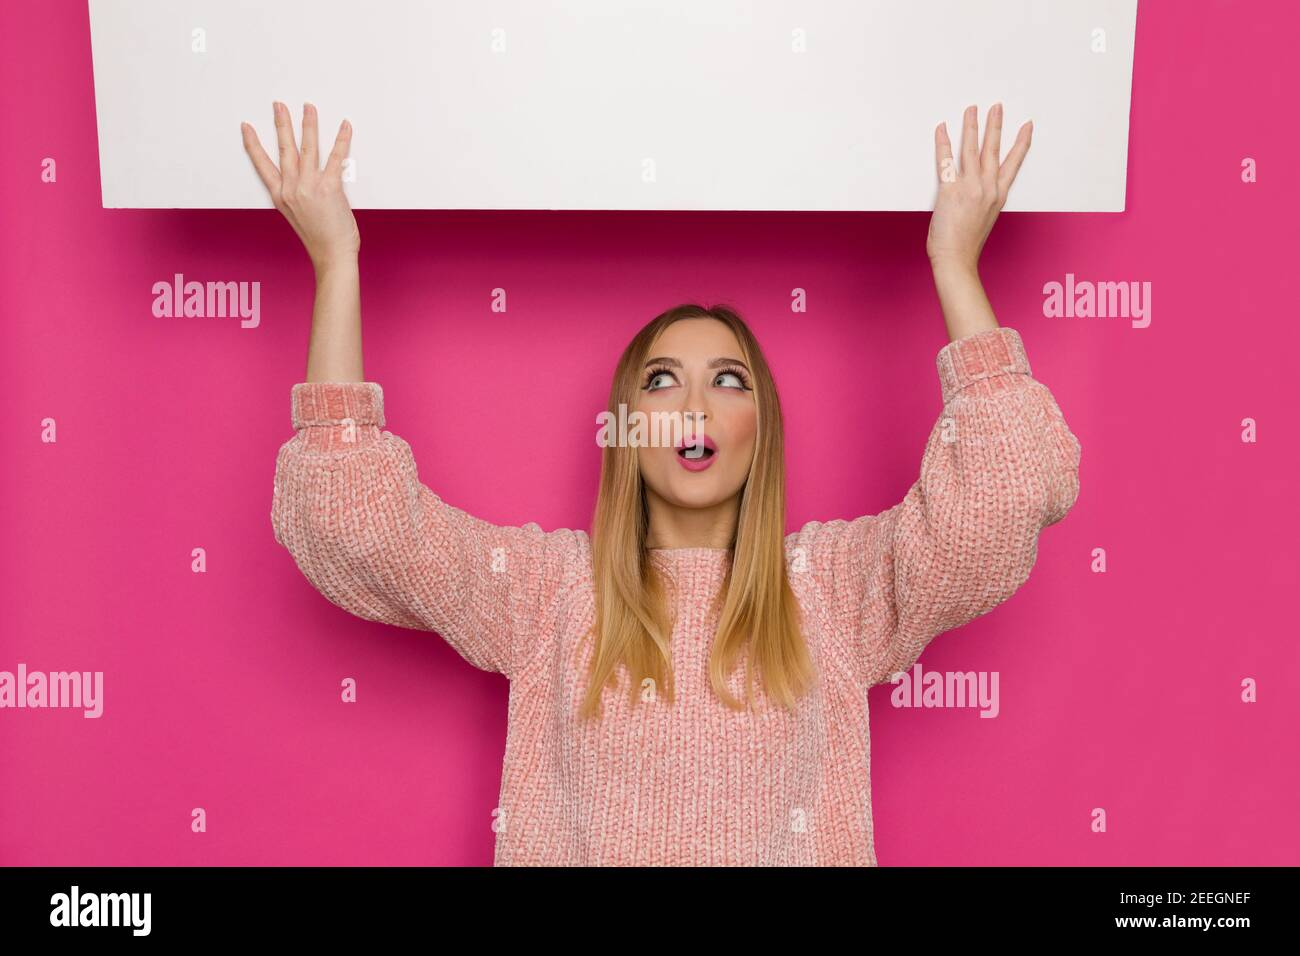 Surprised young woman in pink sweater is holding white banner over head, looking up and talking. Front view. Waist up studio shot on pink background. Stock Photo